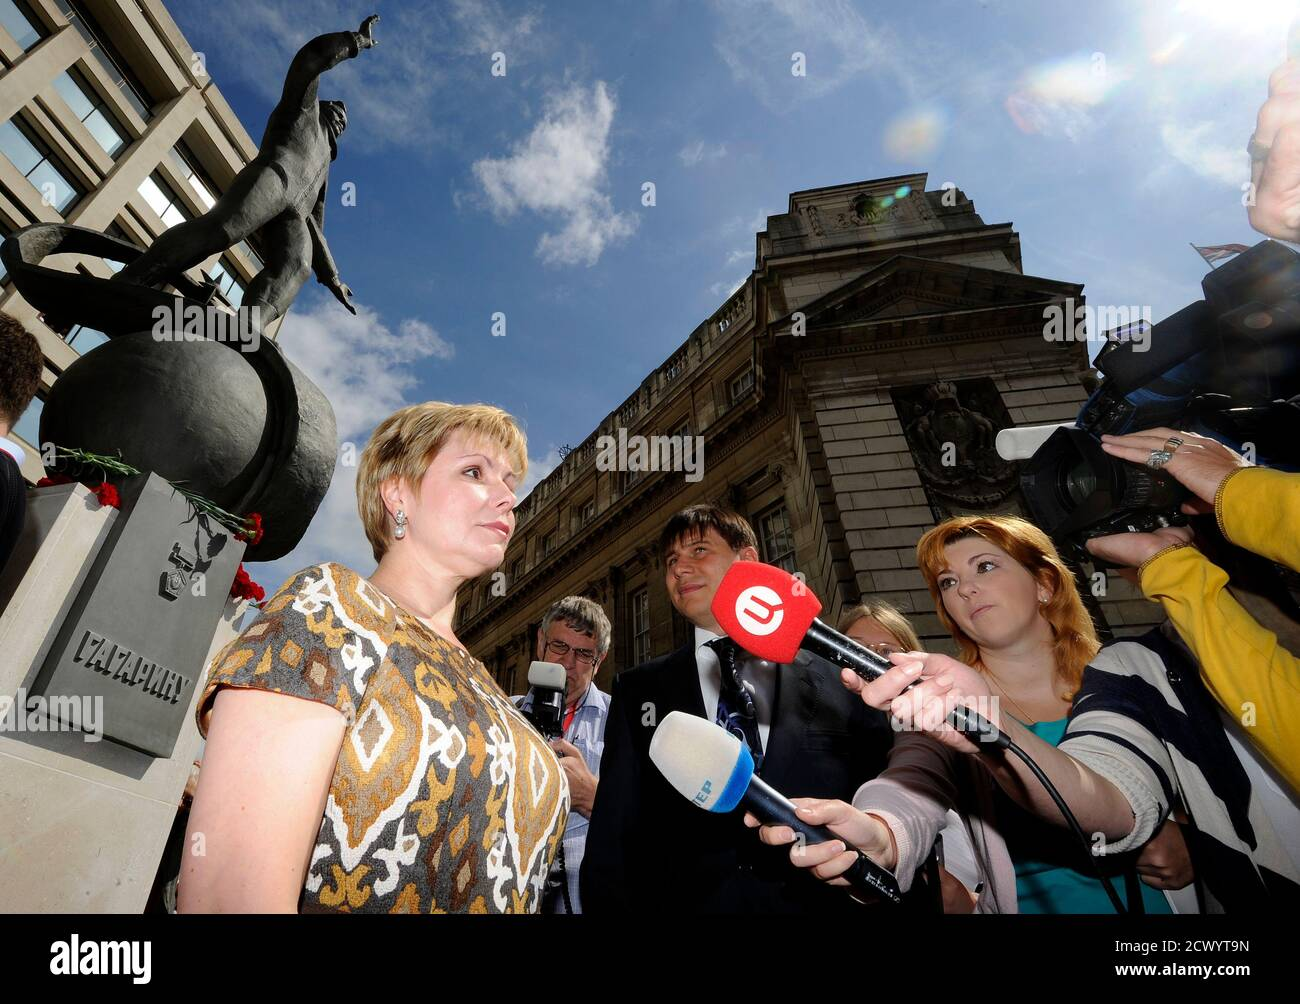 Elena Gagarina, the daughter of Yuri Gagarin, the first man in space, talks to the media after unveiling a statue of him outside the British Council headquarters in central London July 14, 2011   REUTERS/Paul Hackett  (BRITAIN - Tags: SOCIETY POLITICS) Foto de stock